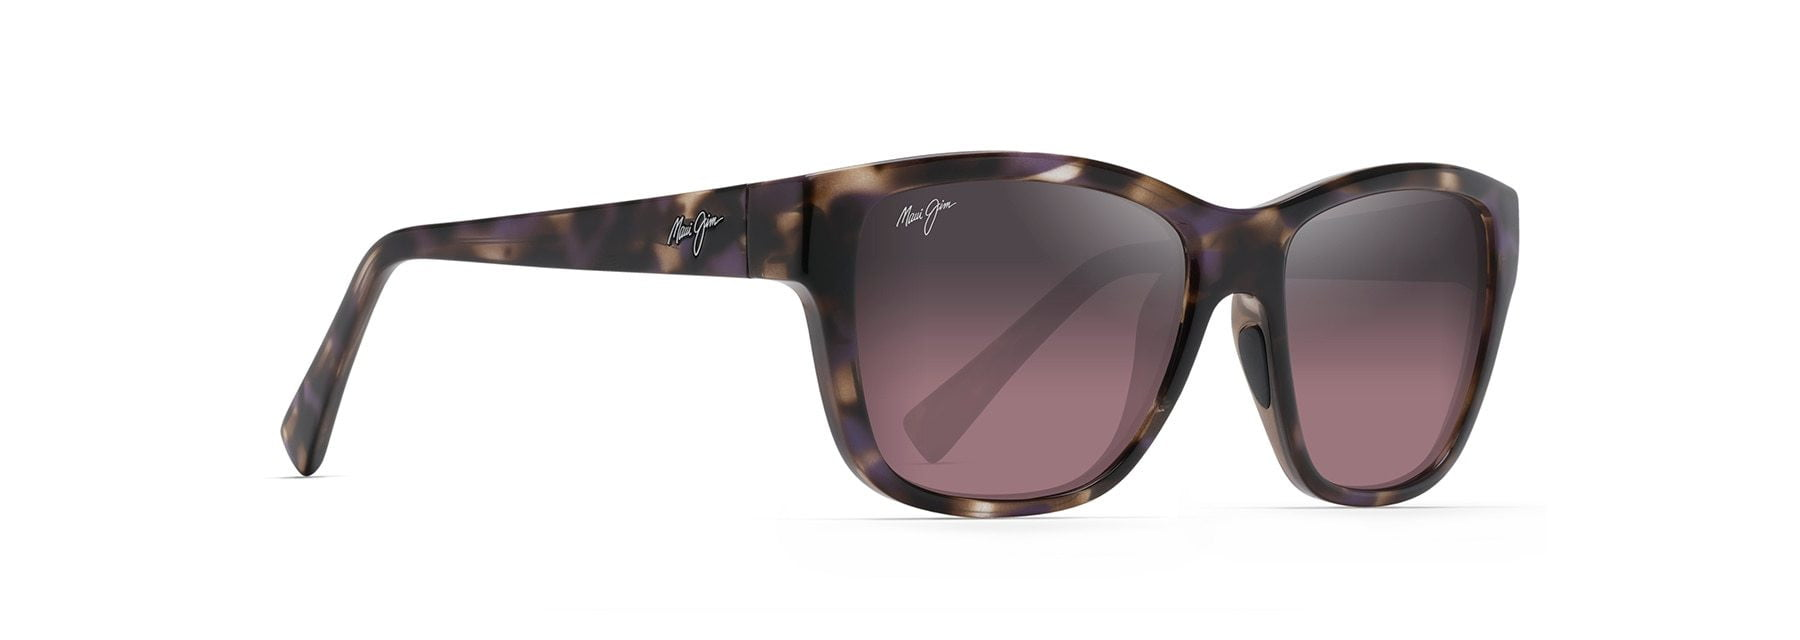 Maui Jim Hanapa'a Sunglasses